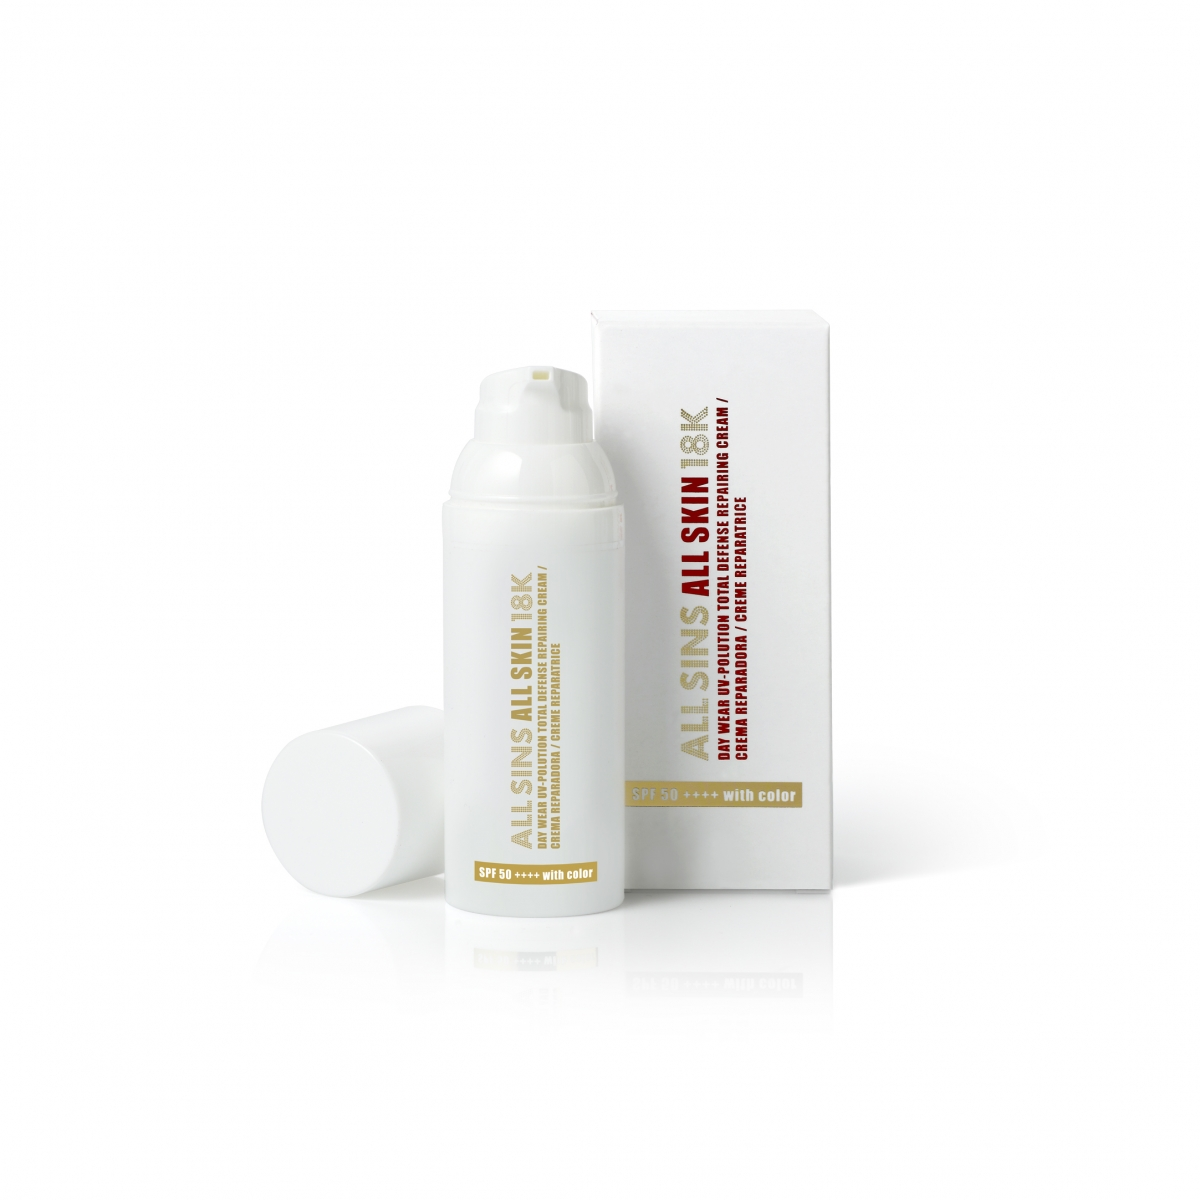 DAY WEAR UV-POLLUTION TOTAL DEFENSE REPAIRING CREAM WITH COLOR SPF 50